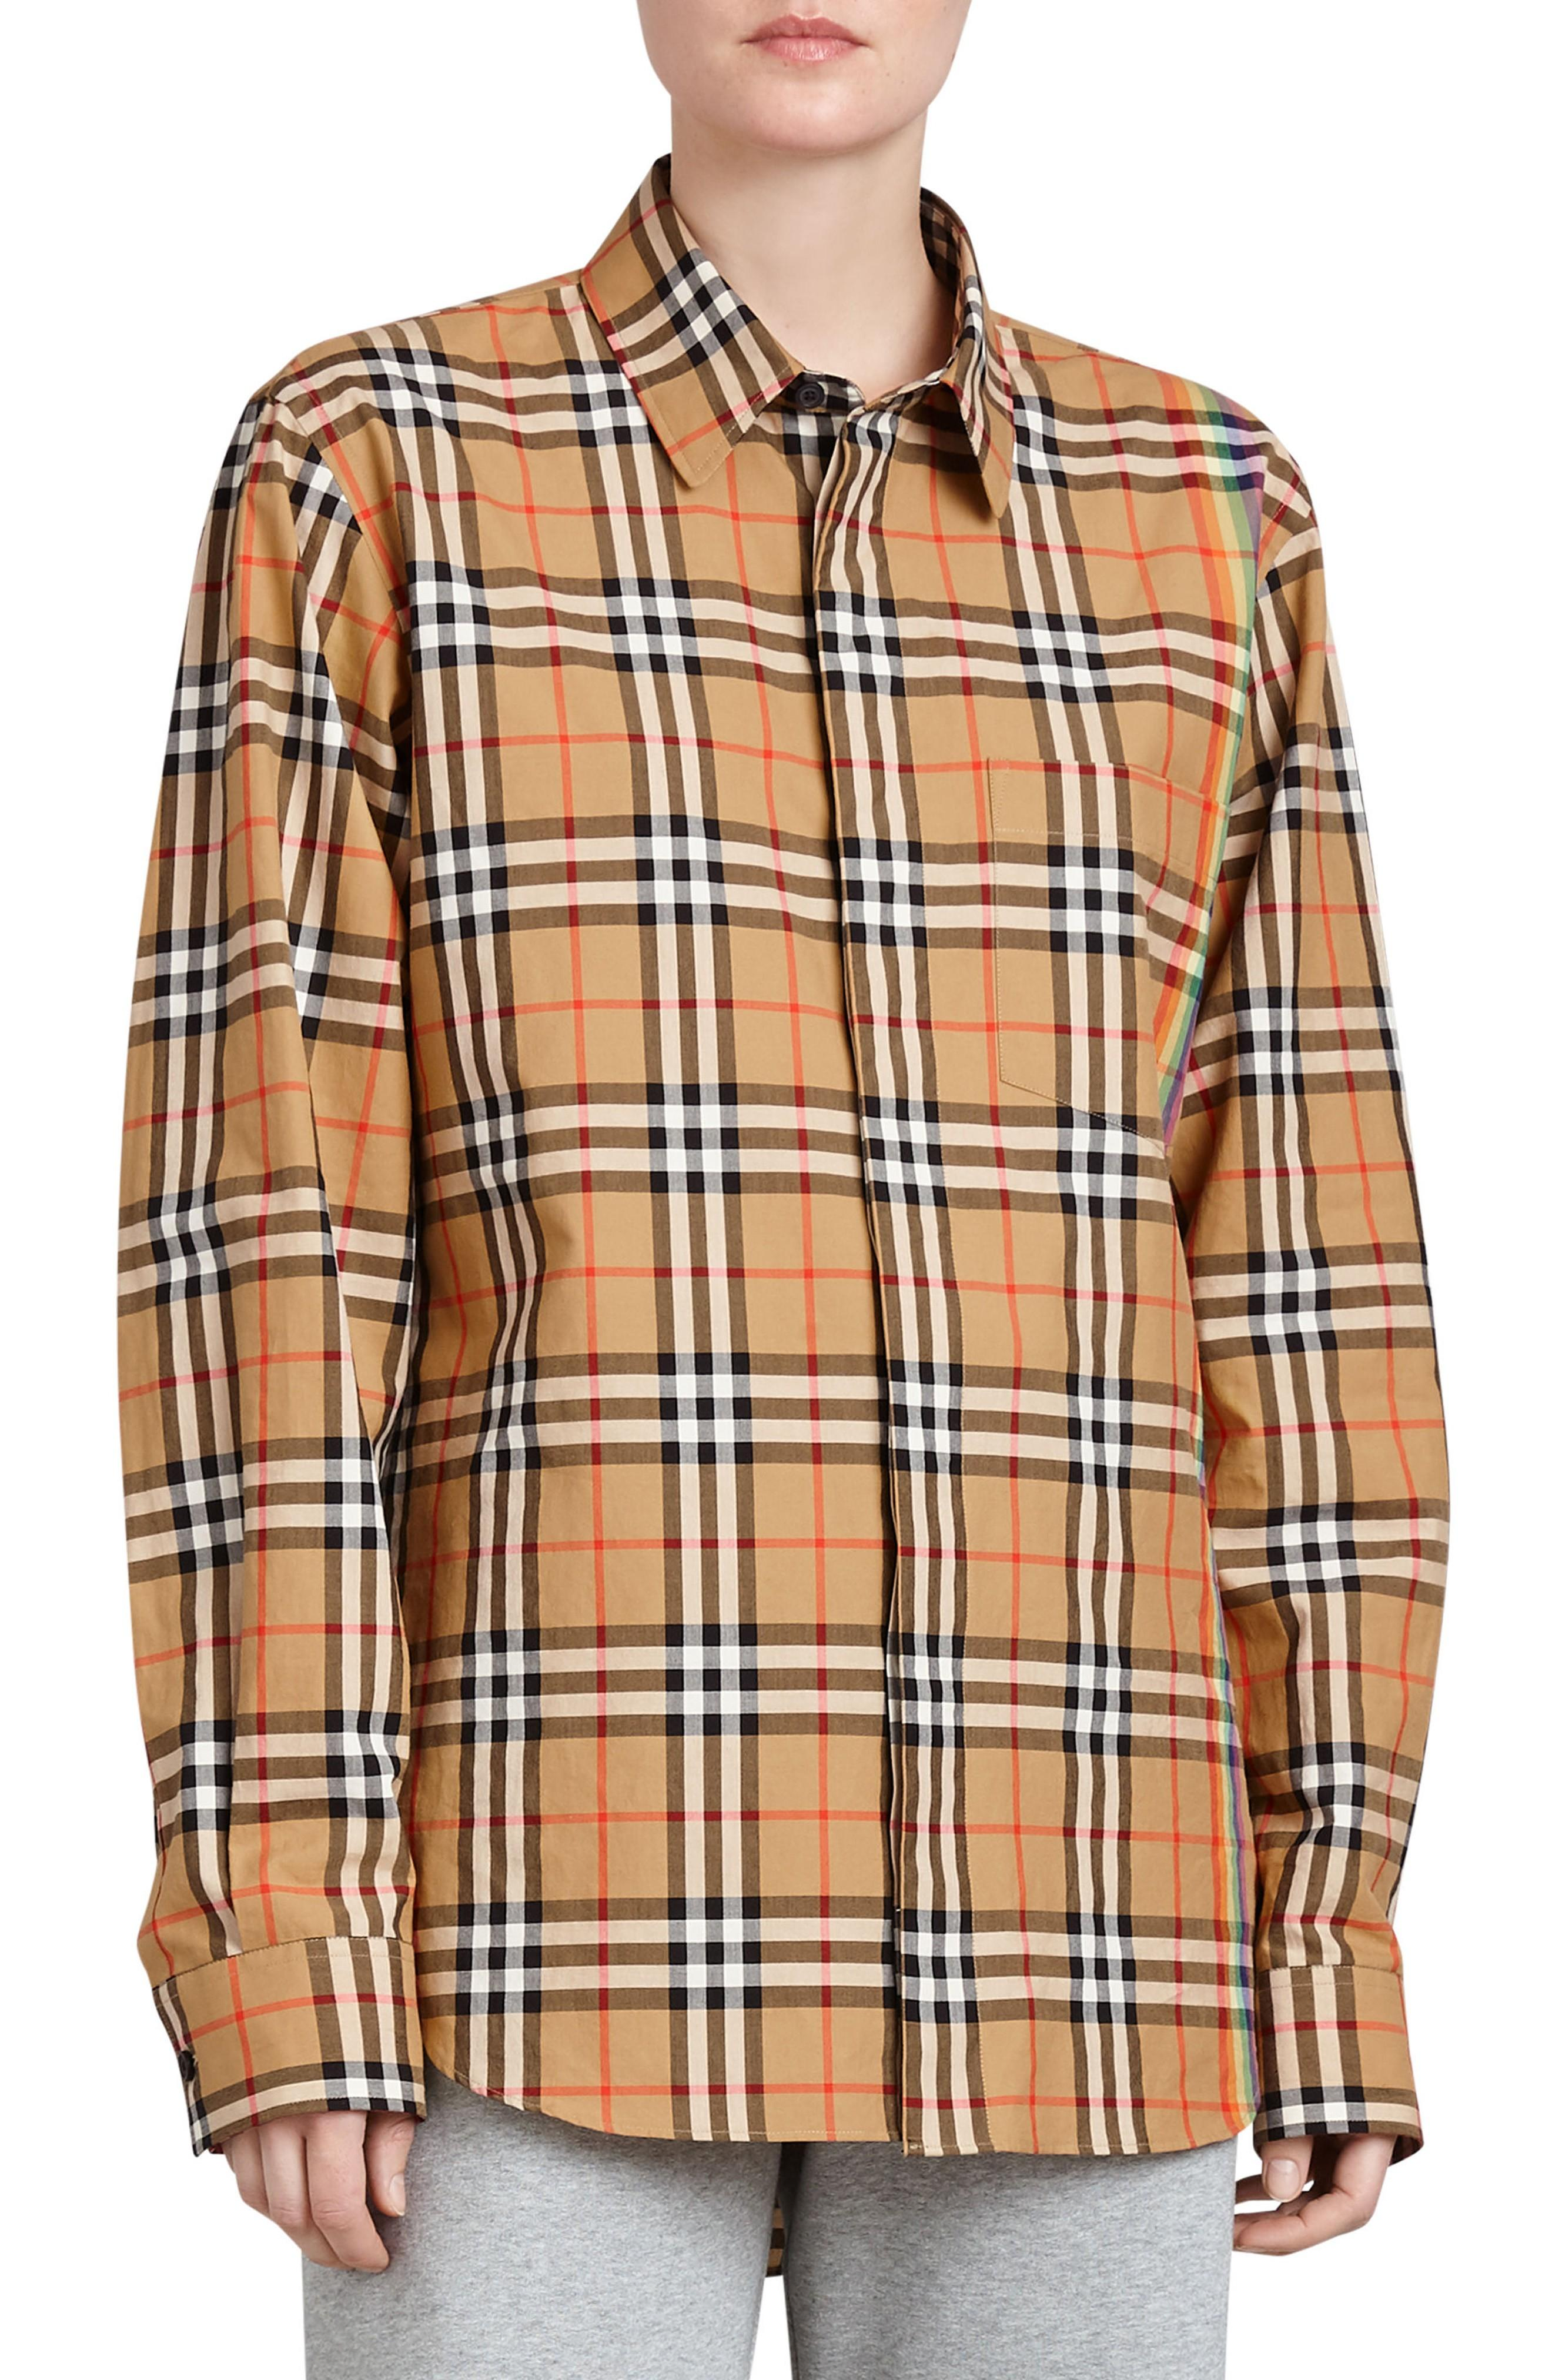 92f25f6092b0 Burberry Rainbow Vintage Checked Cotton Shirt In Aetique Yellow ...